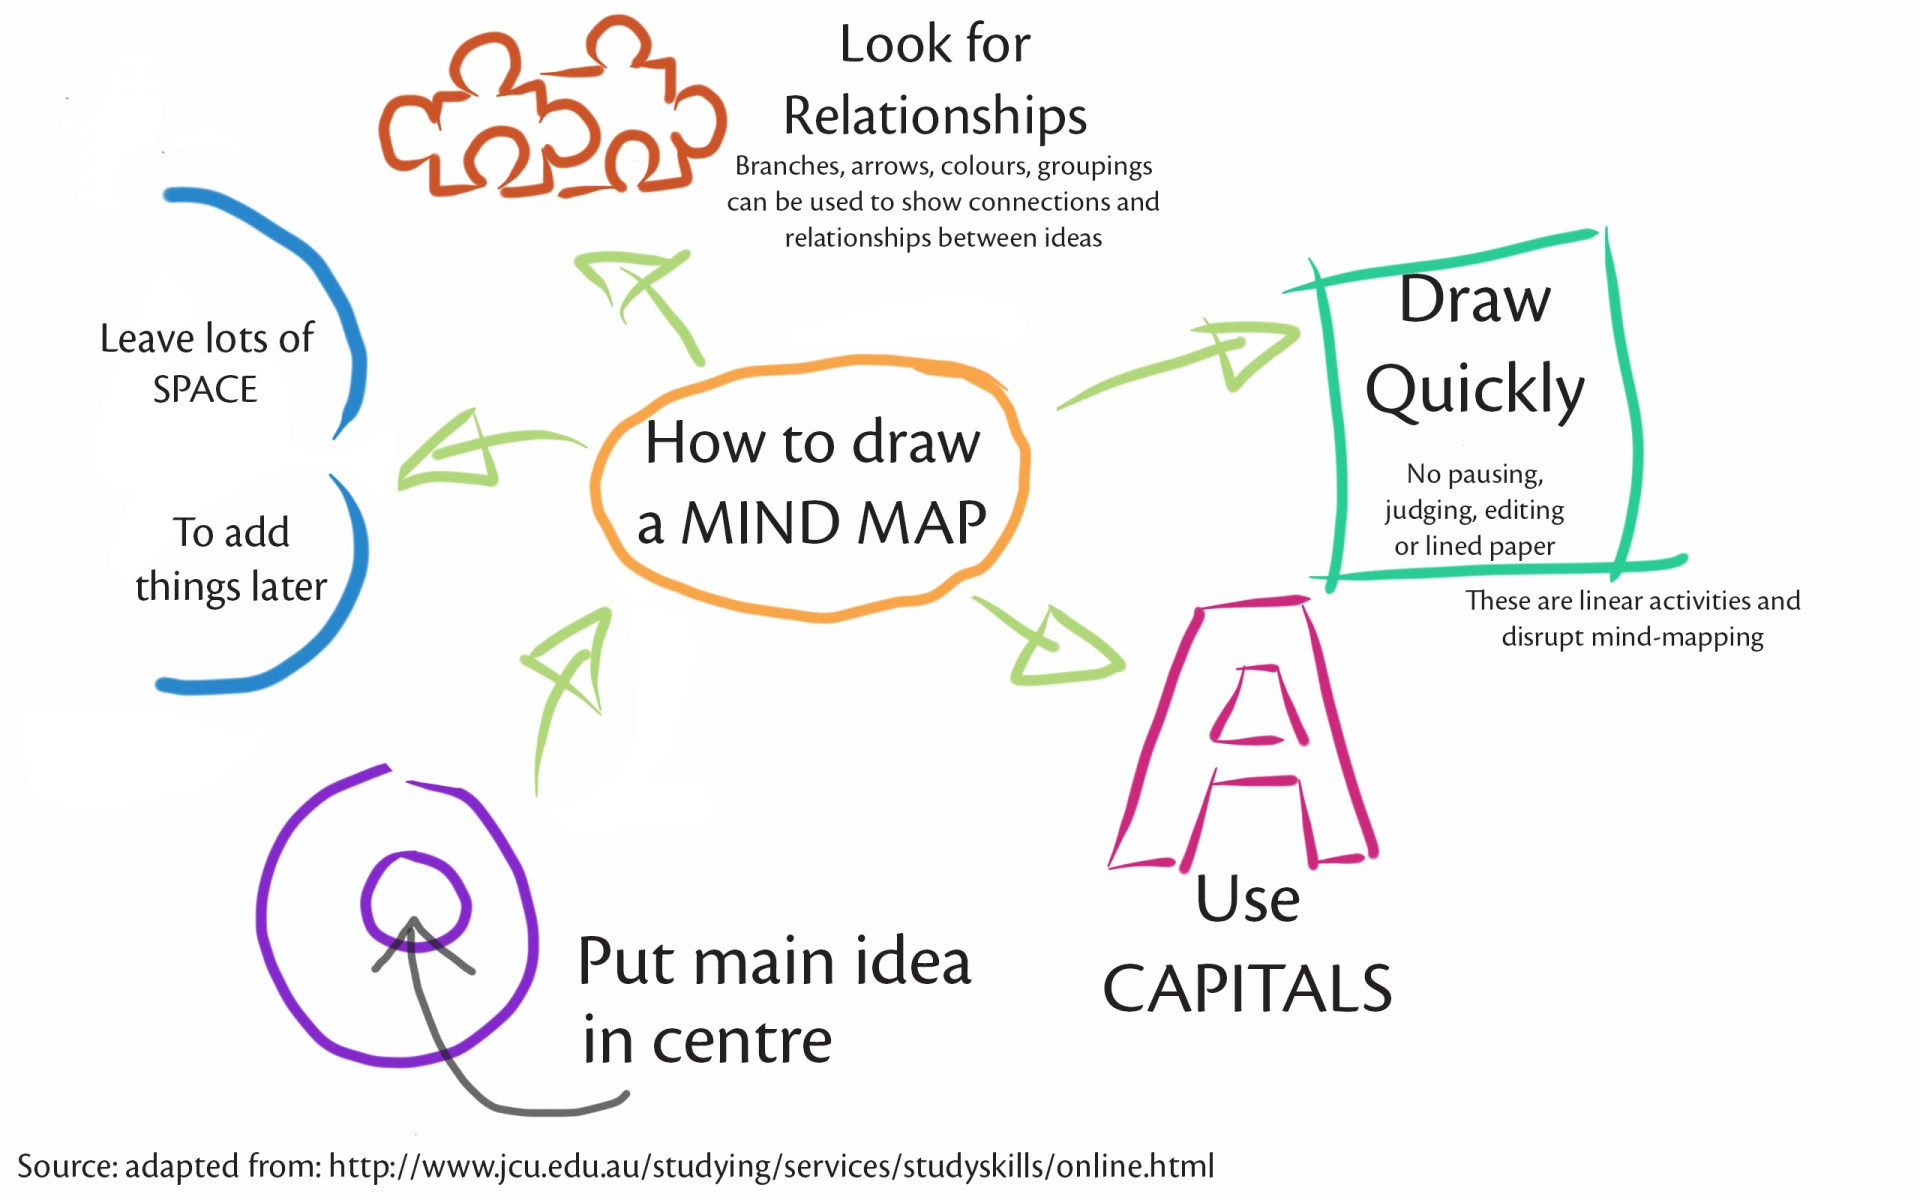 012 Research Paper Mindmap Free Plagiarism Checker For Students Online Toolkit Thepensters Striking Com Toolkit.thepensters.com 1920